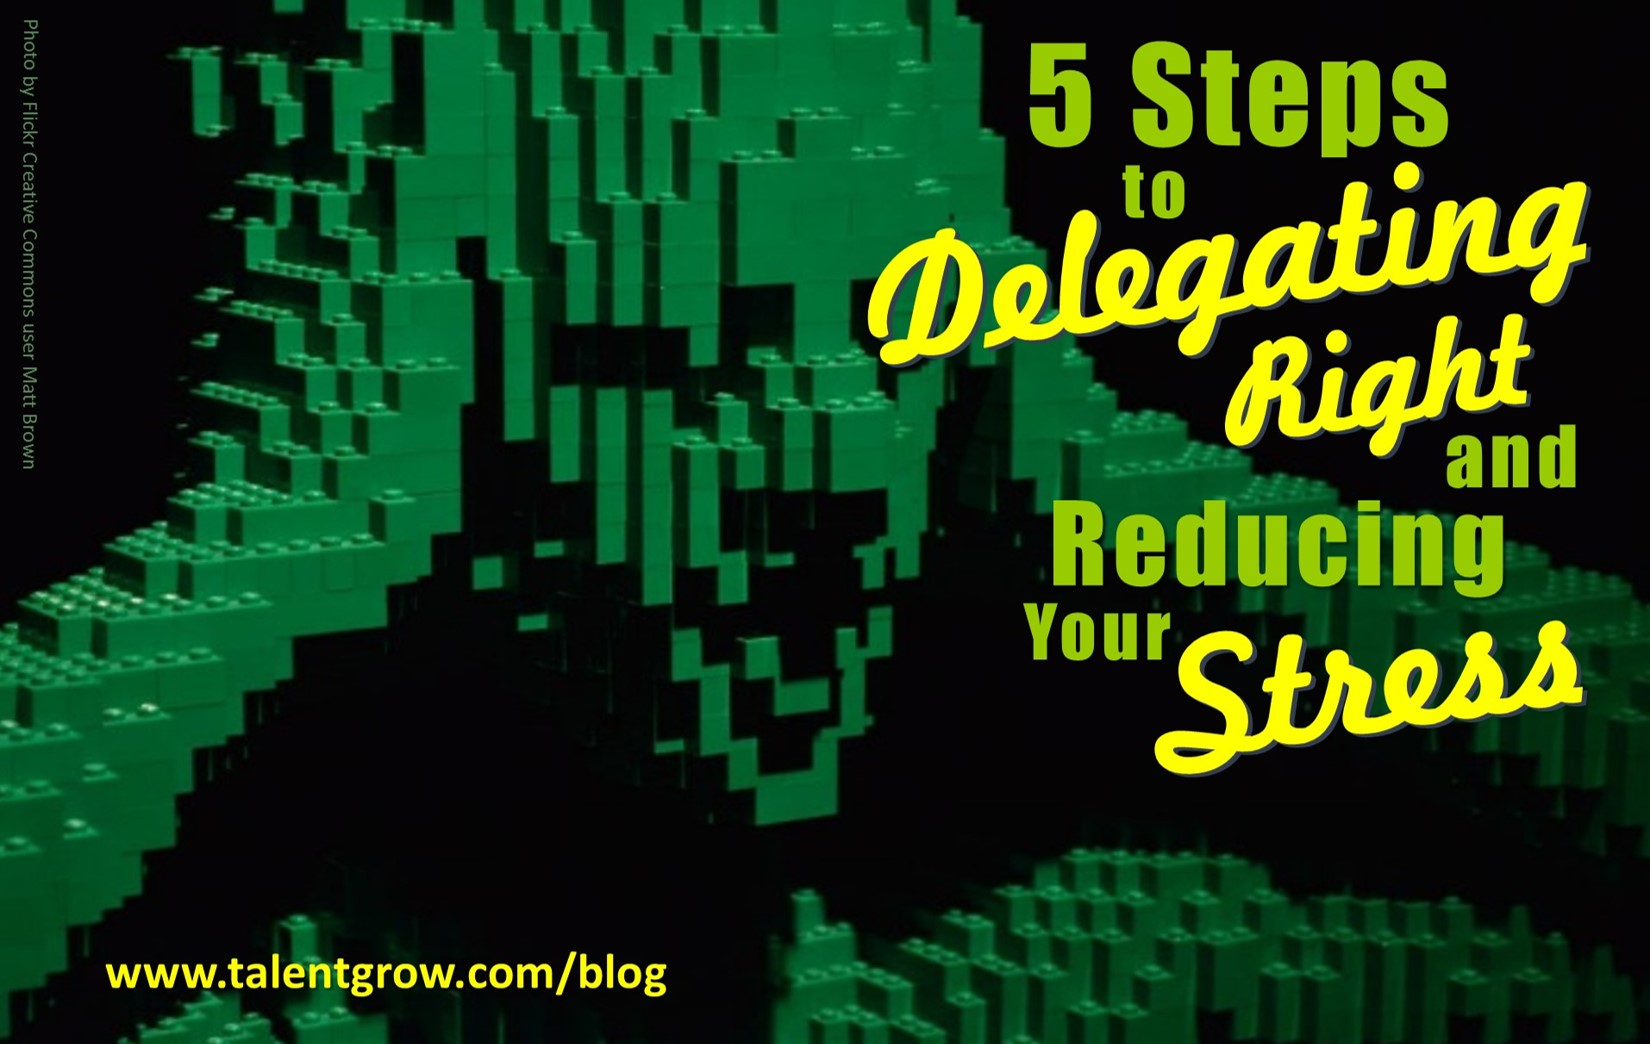 5 steps to delegating right and reducing your stress